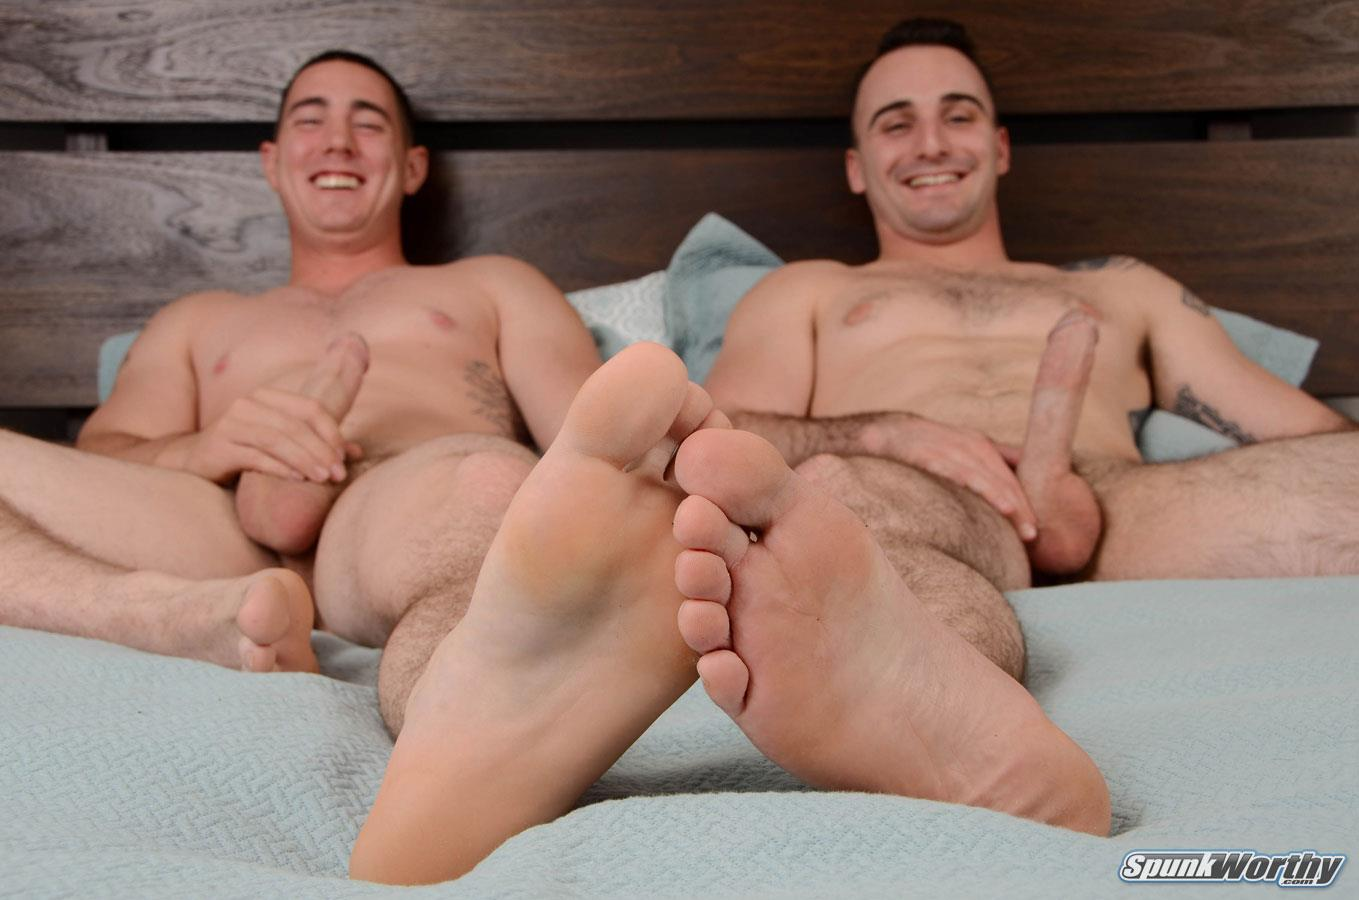 SpunkWorthy-Damien-and-Tom-Army-Buddies-Jerking-Off-Together-Army-Cock-Amateur-Gay-Porn-07 Straight Army Boys Share Some Jerkoff Time Together